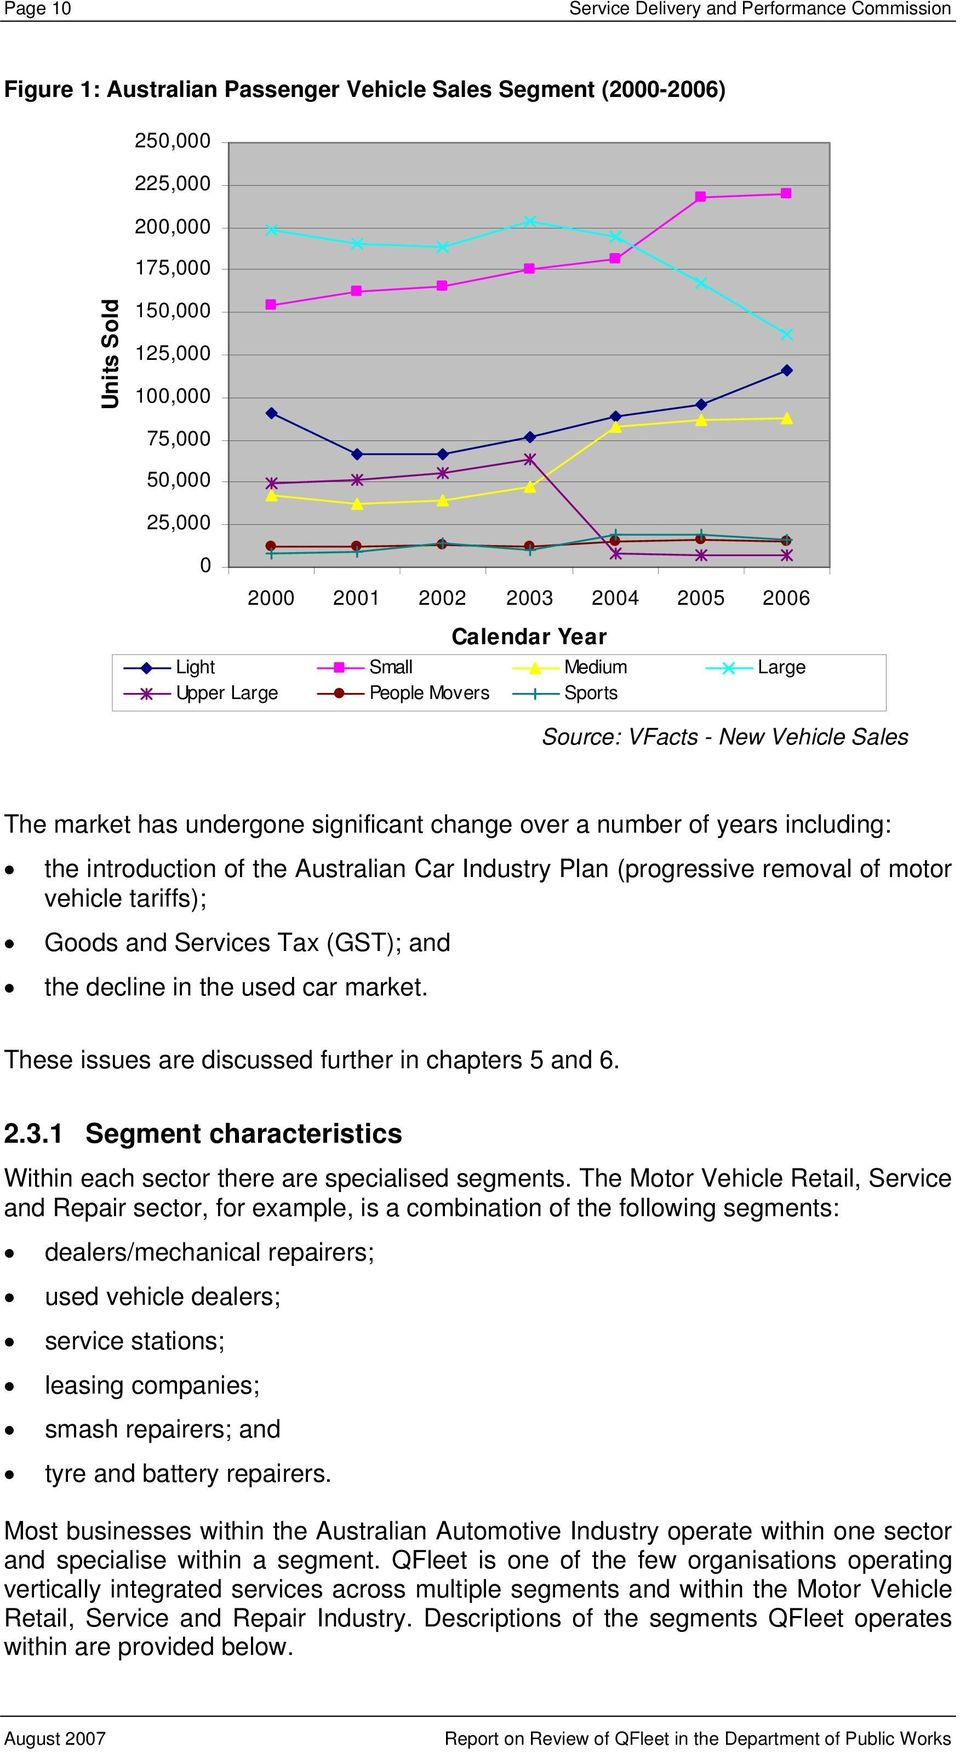 a number of years including: the introduction of the Australian Car Industry Plan (progressive removal of motor vehicle tariffs); Goods and Services Tax (GST); and the decline in the used car market.